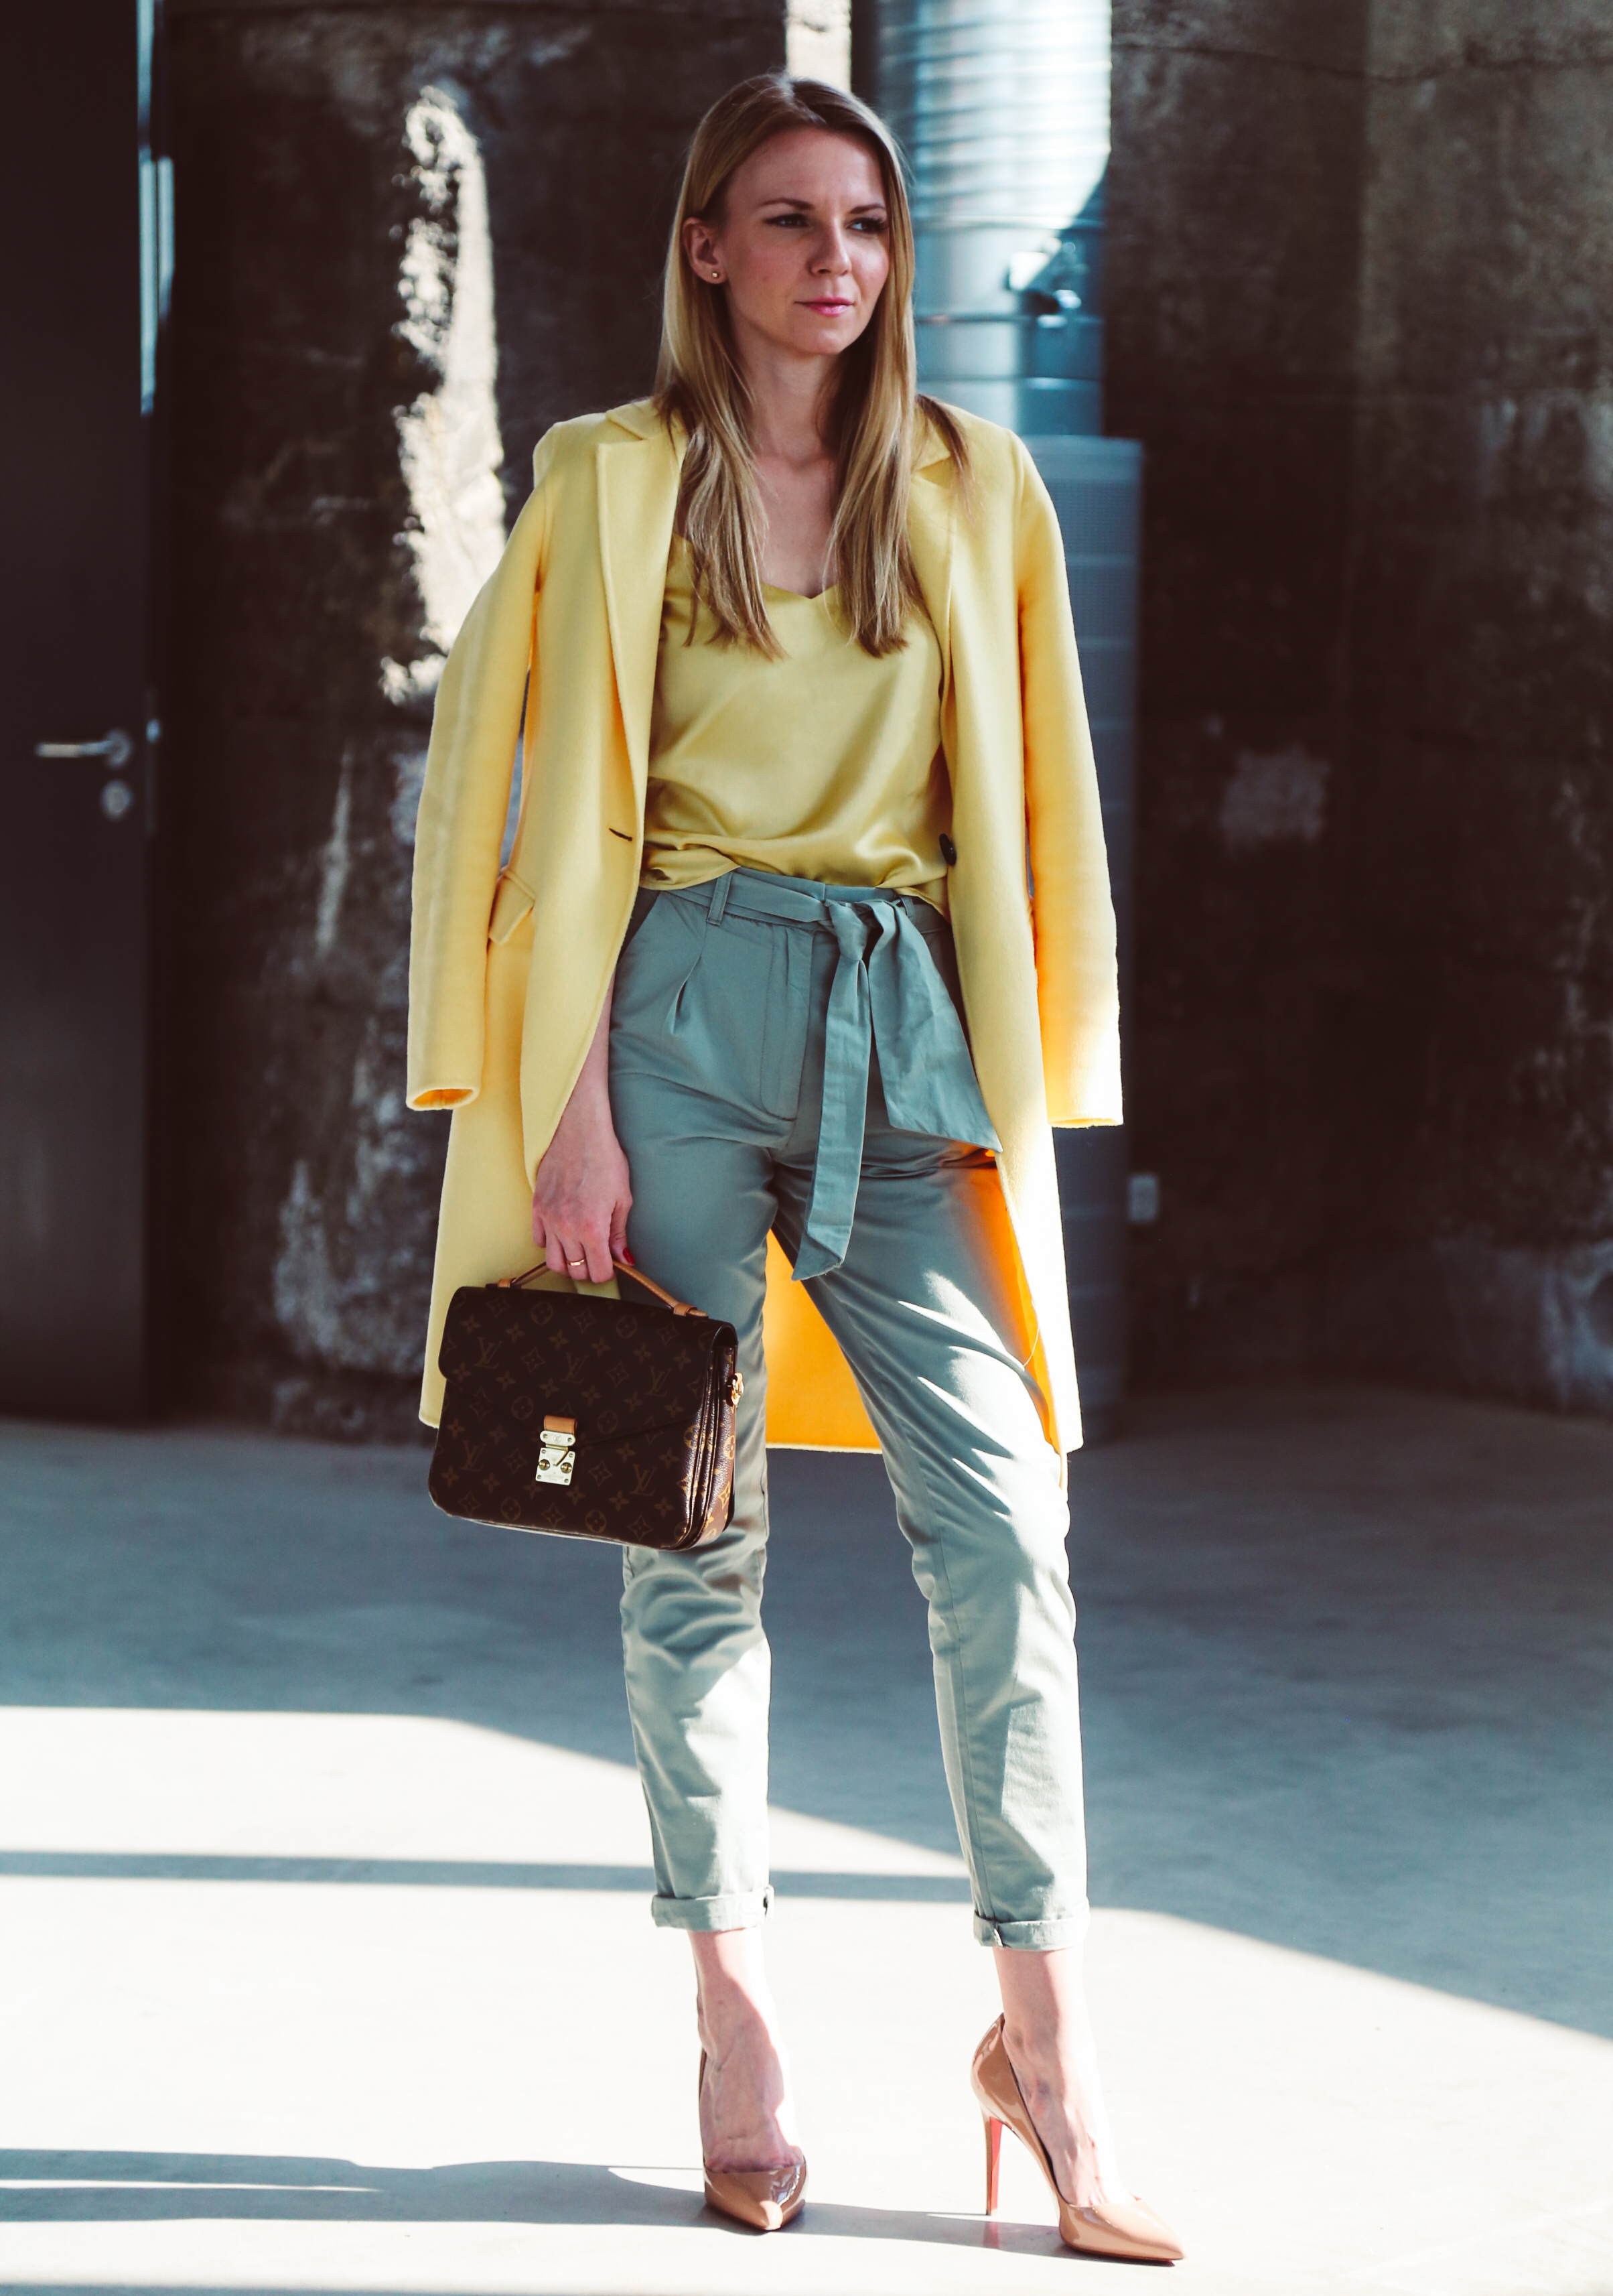 Outfit: High Waist Chino, Silk Top and Yellow Coat Jennifer Loubotin HighHeels Fashion Outfit Edited Zara LouisVuitton LVOE LV Metis EditedTheLable München Munich